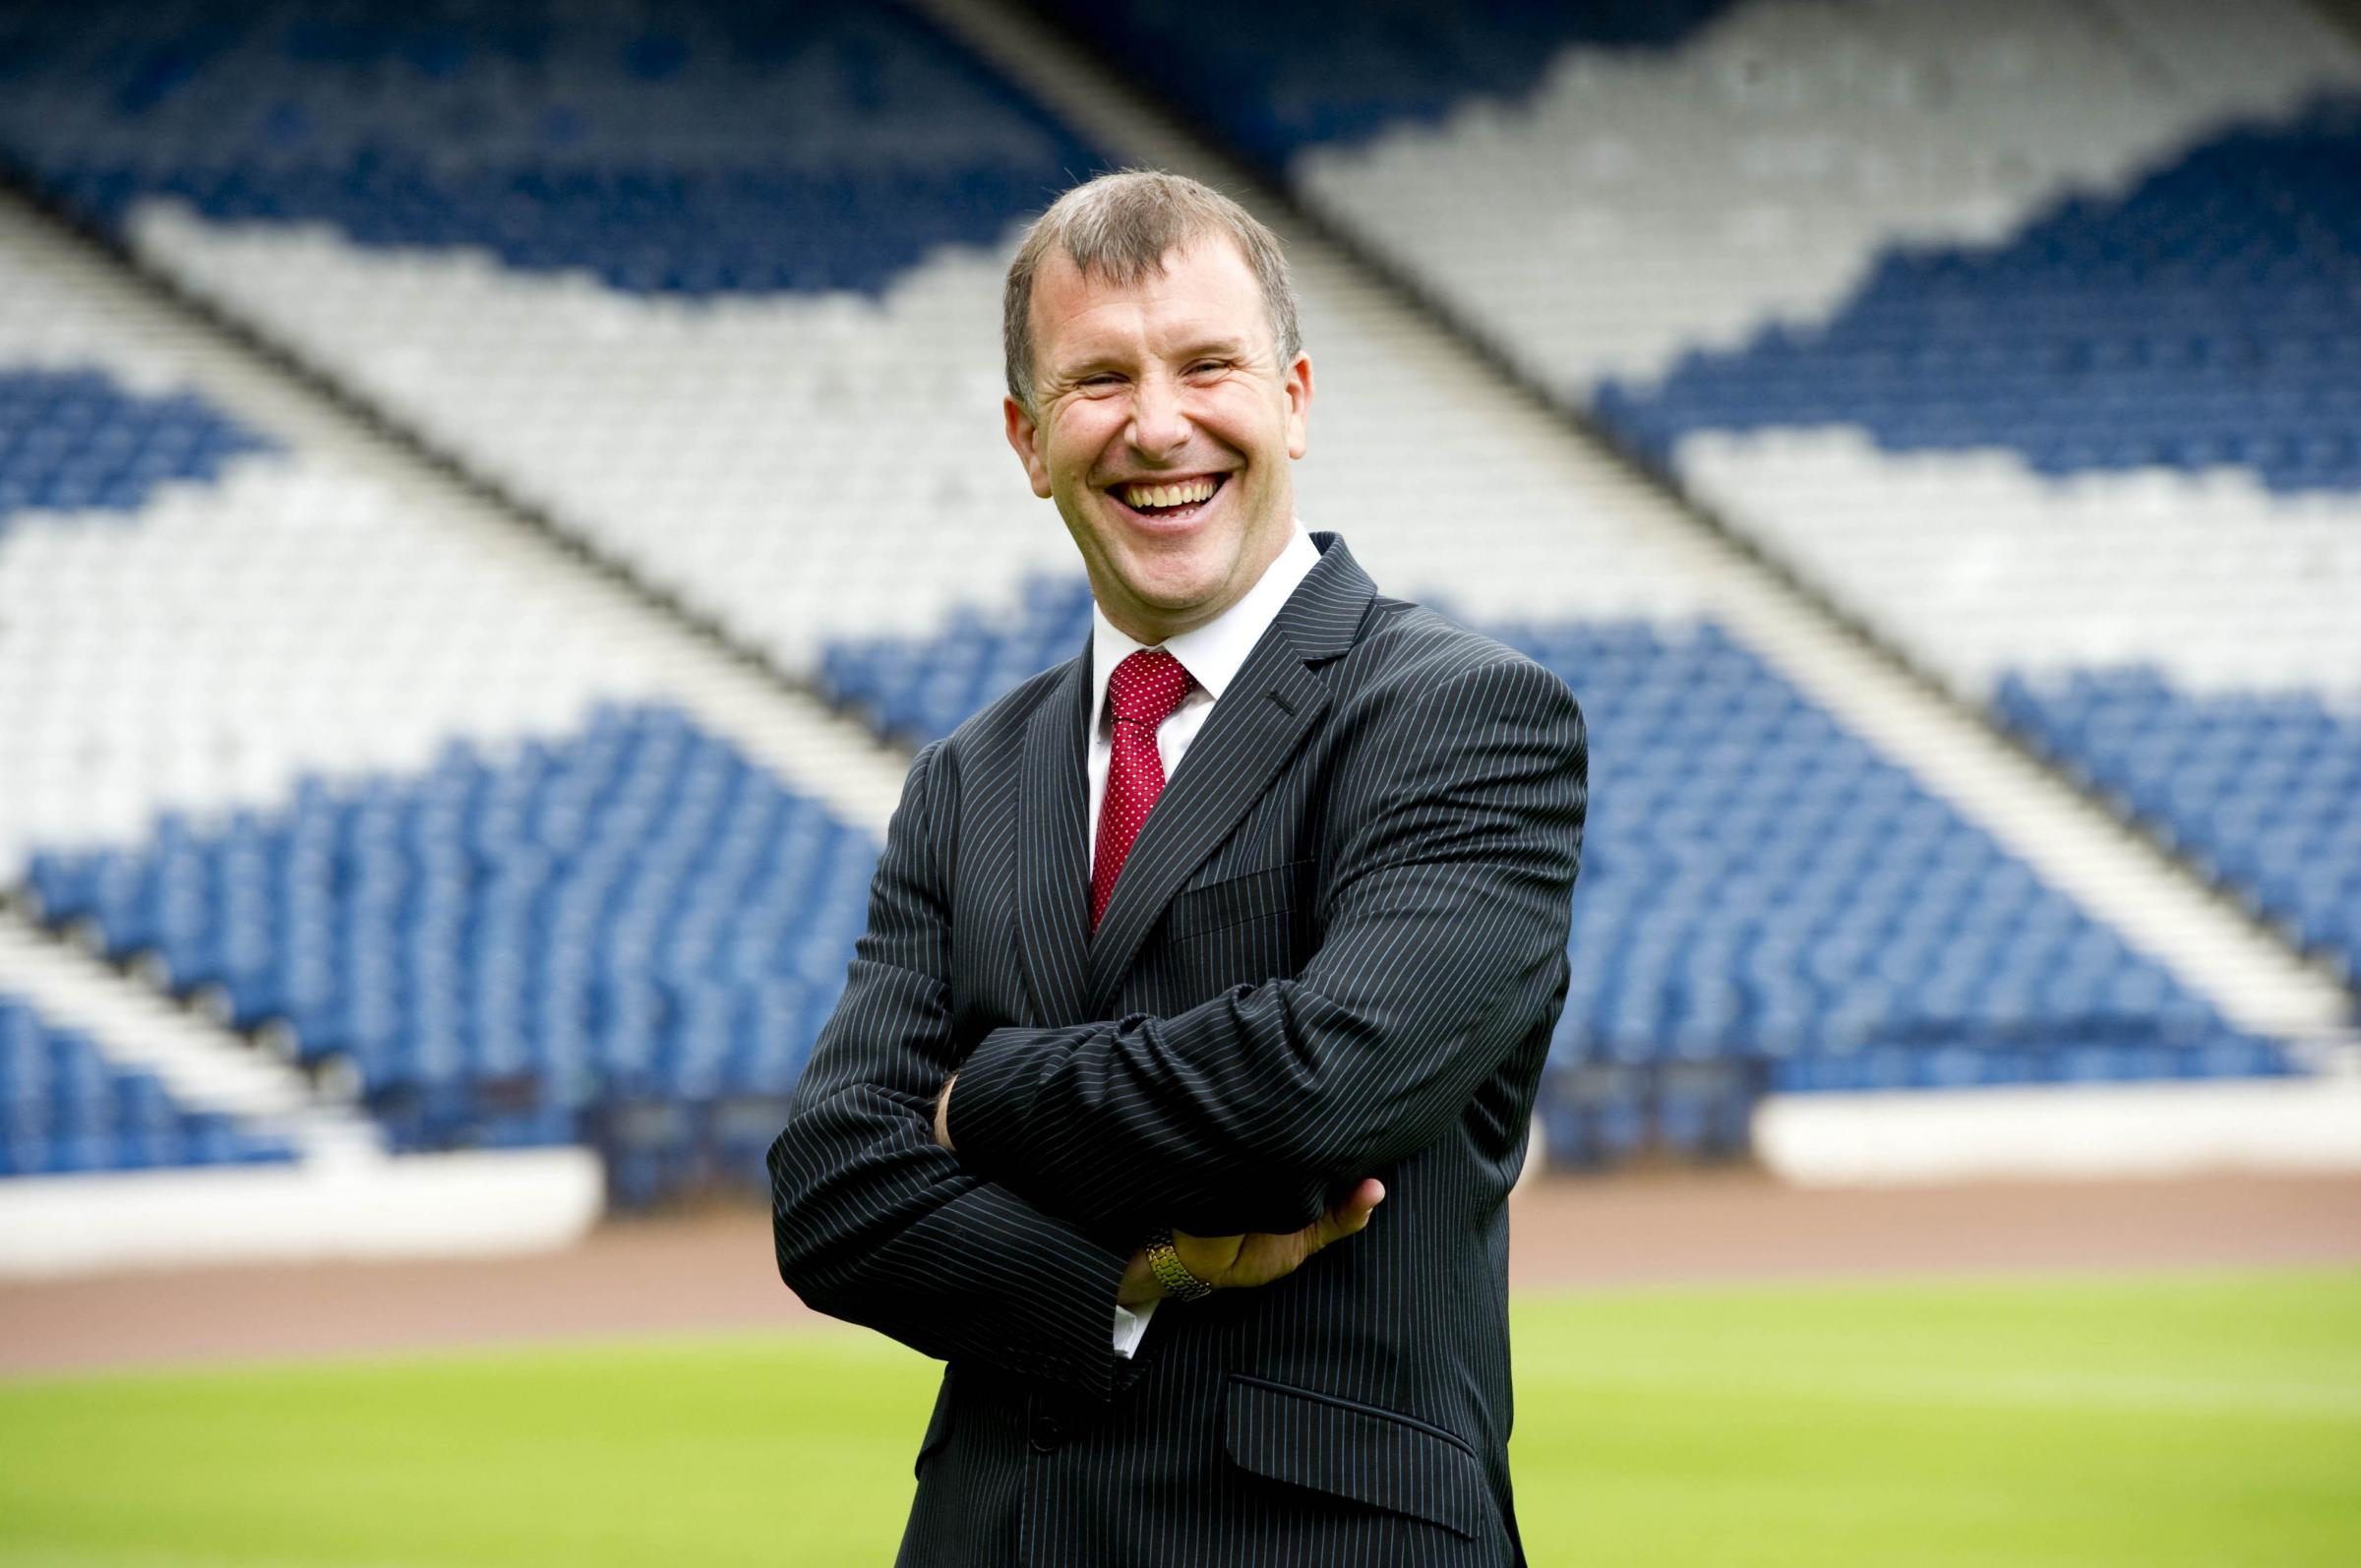 It was all smiles for Stewart Regan on his first day as SFA chief executive in 2010, but it was all downhill from there.